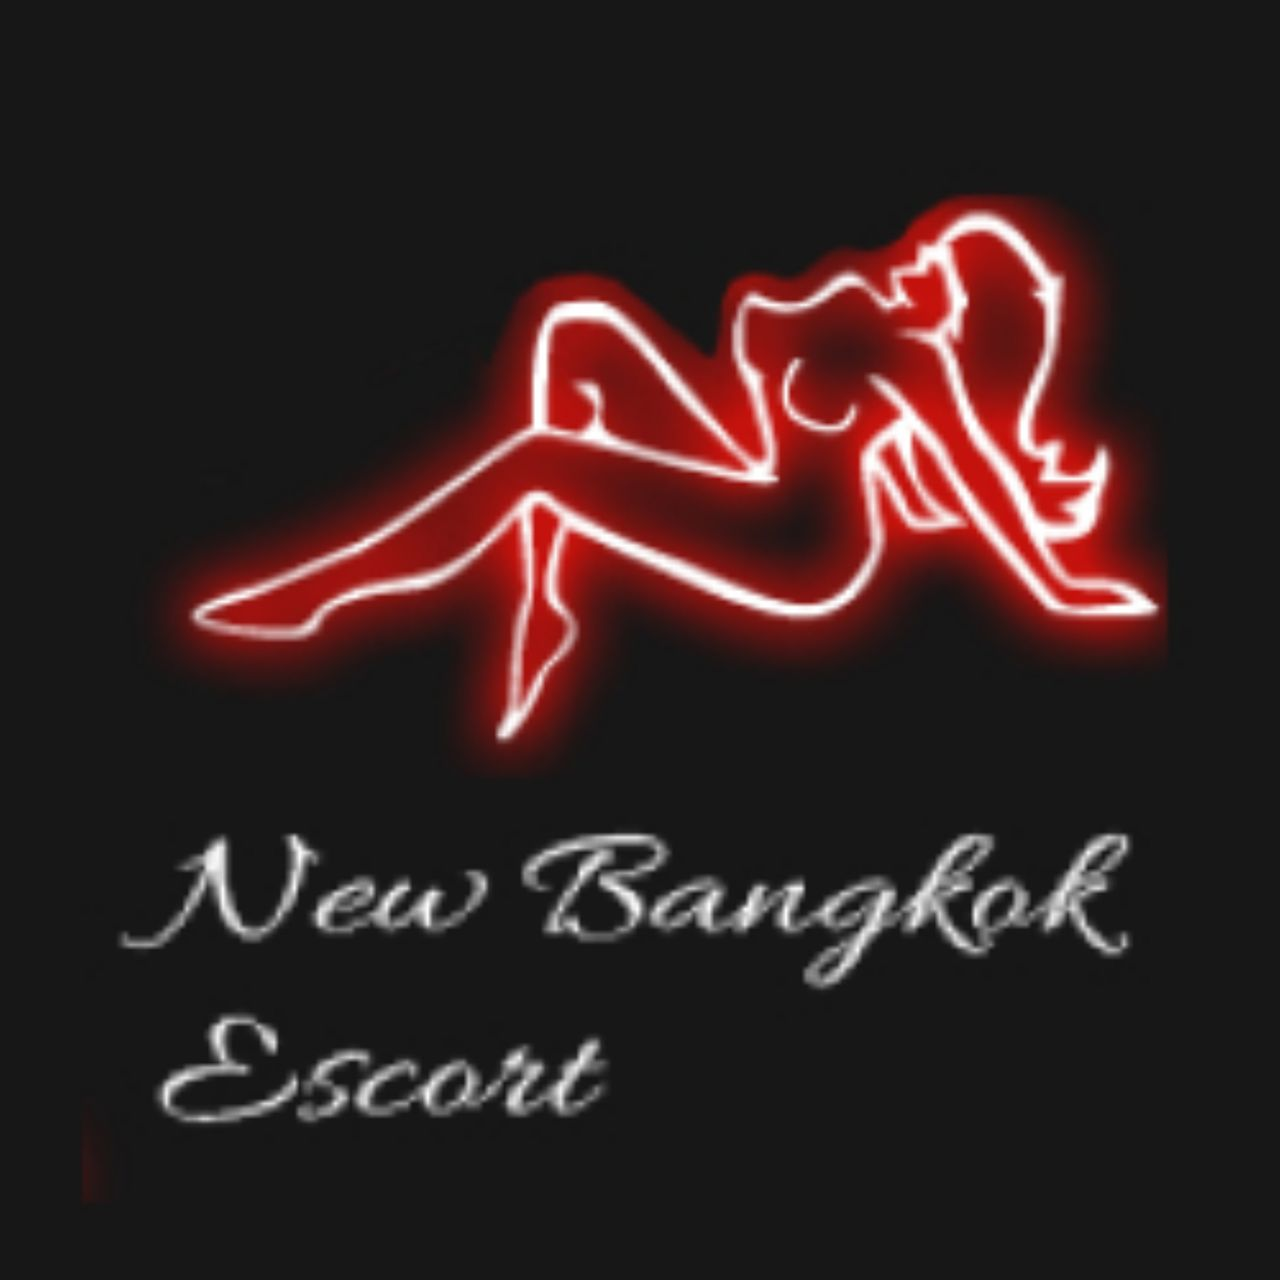 New Bangkok Escort